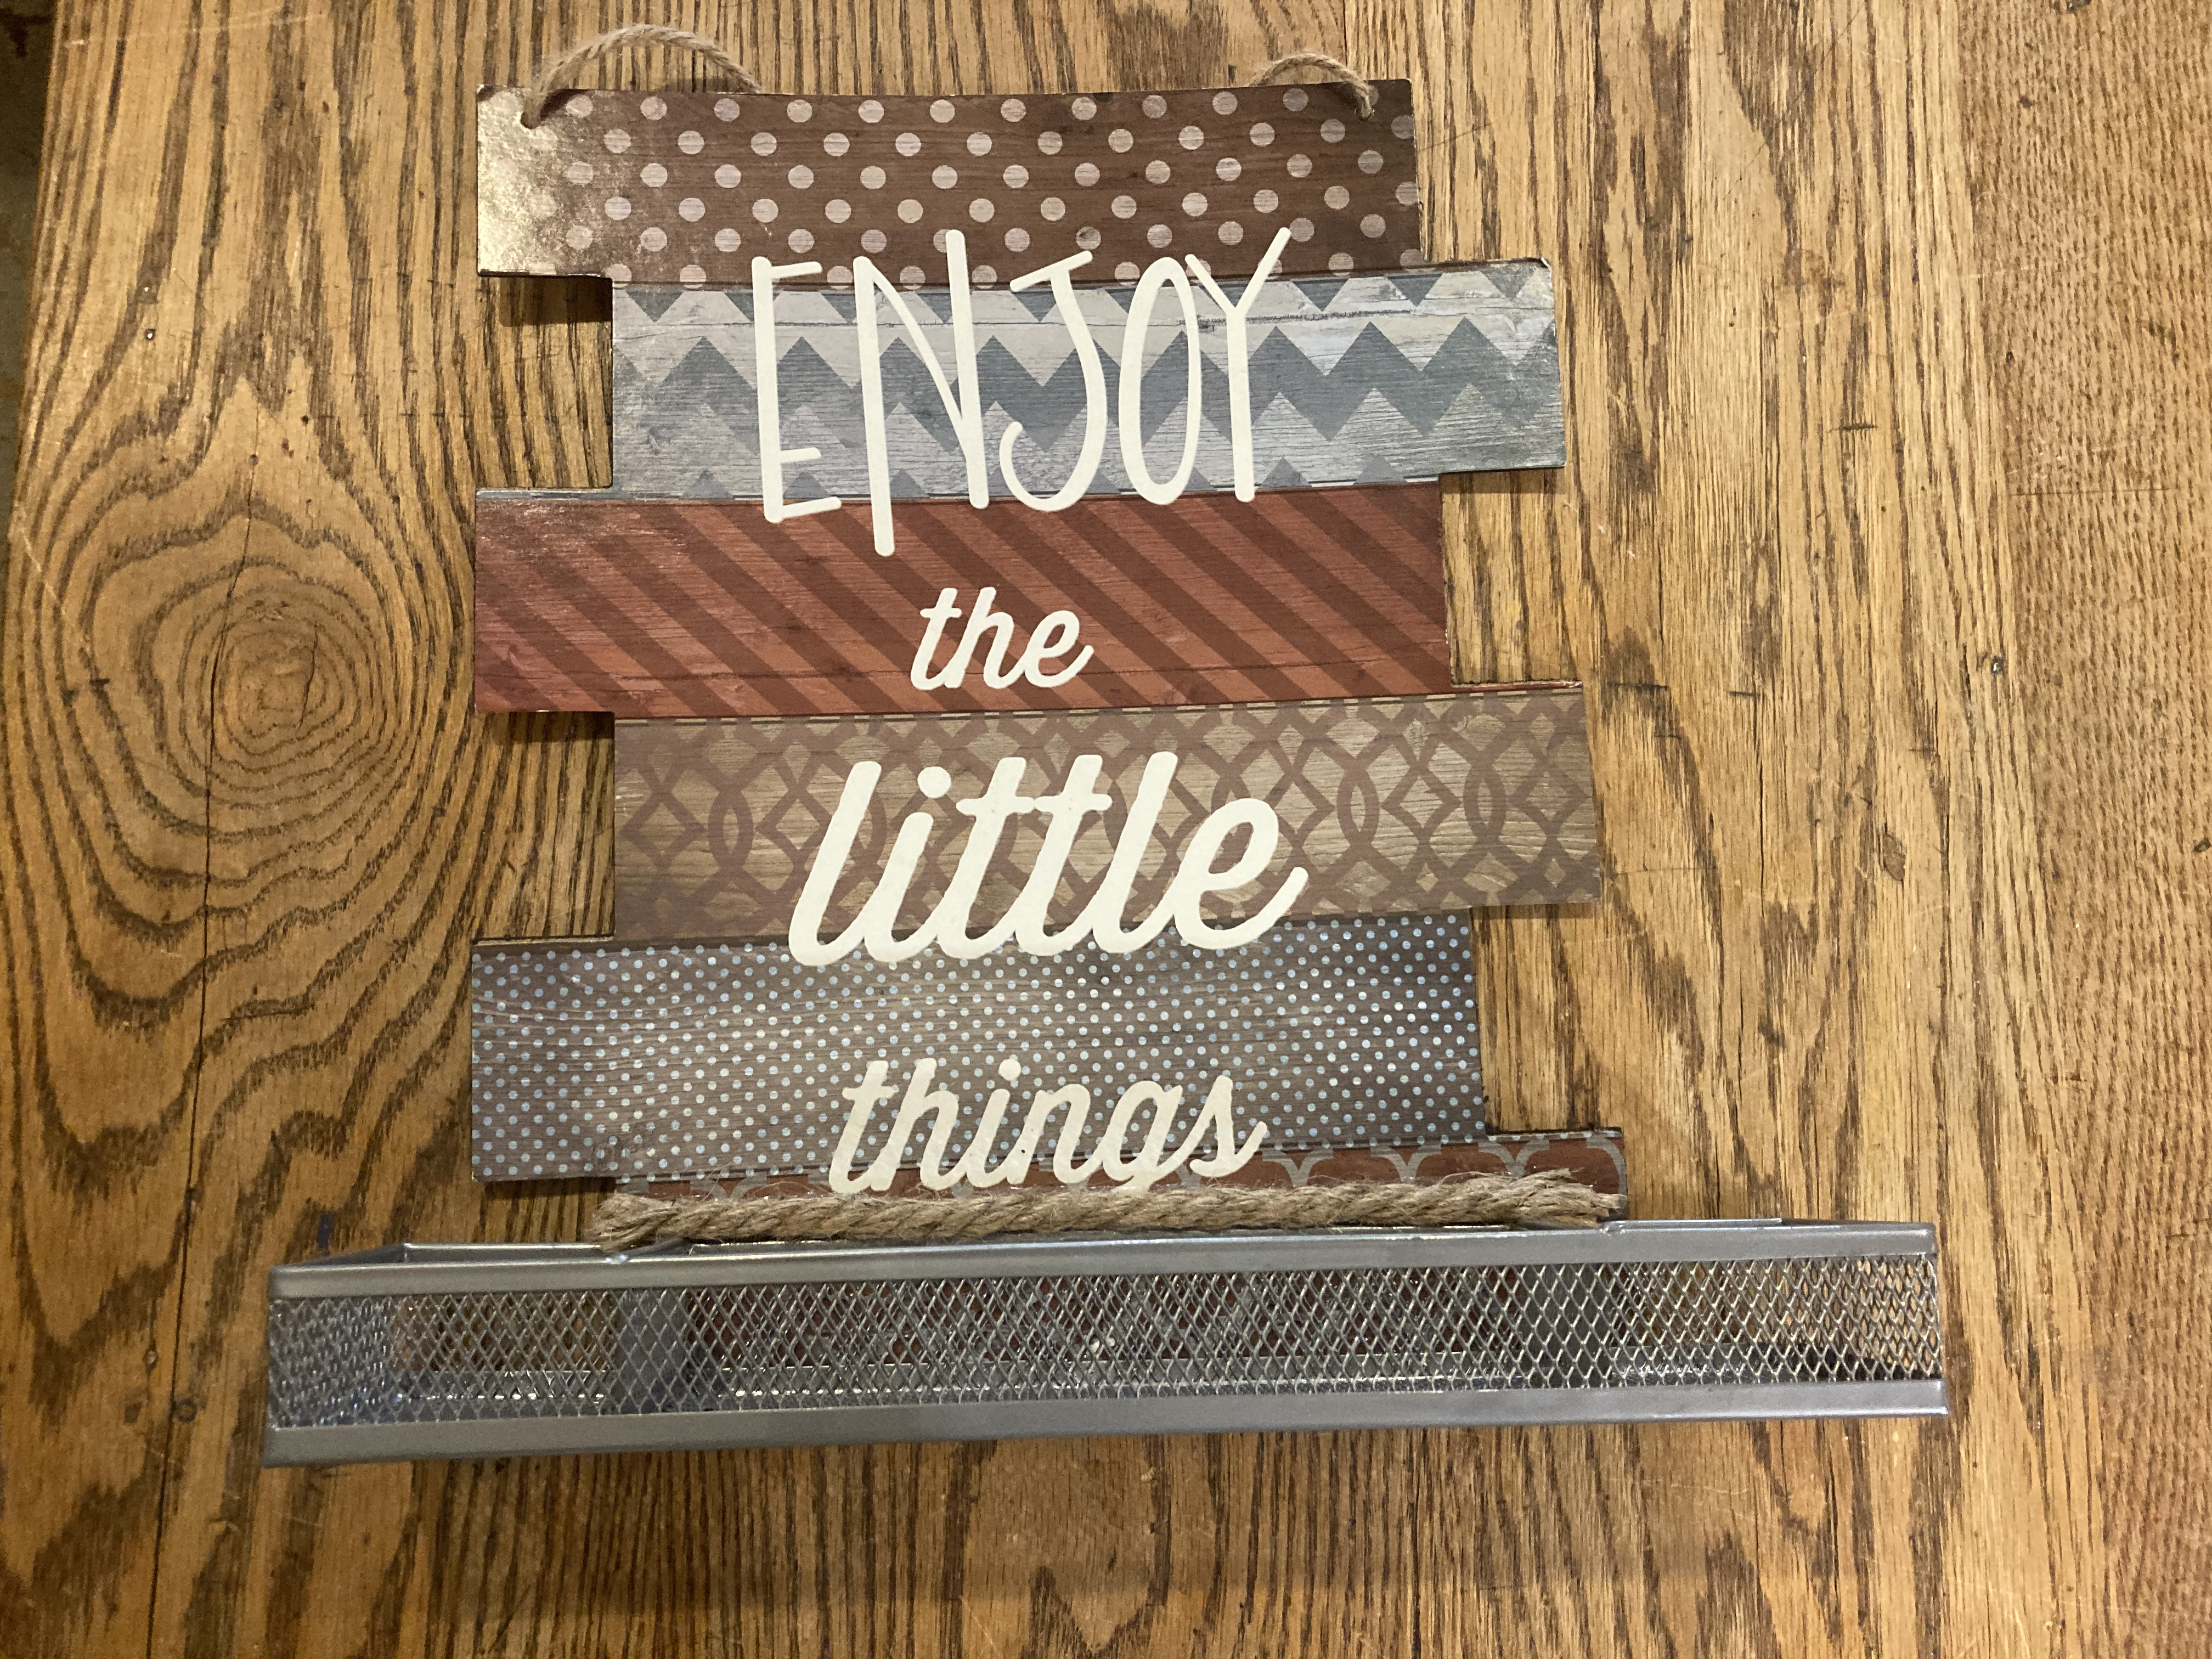 Enjoy-the-Little-Things-wall-hanging_179814A.jpg